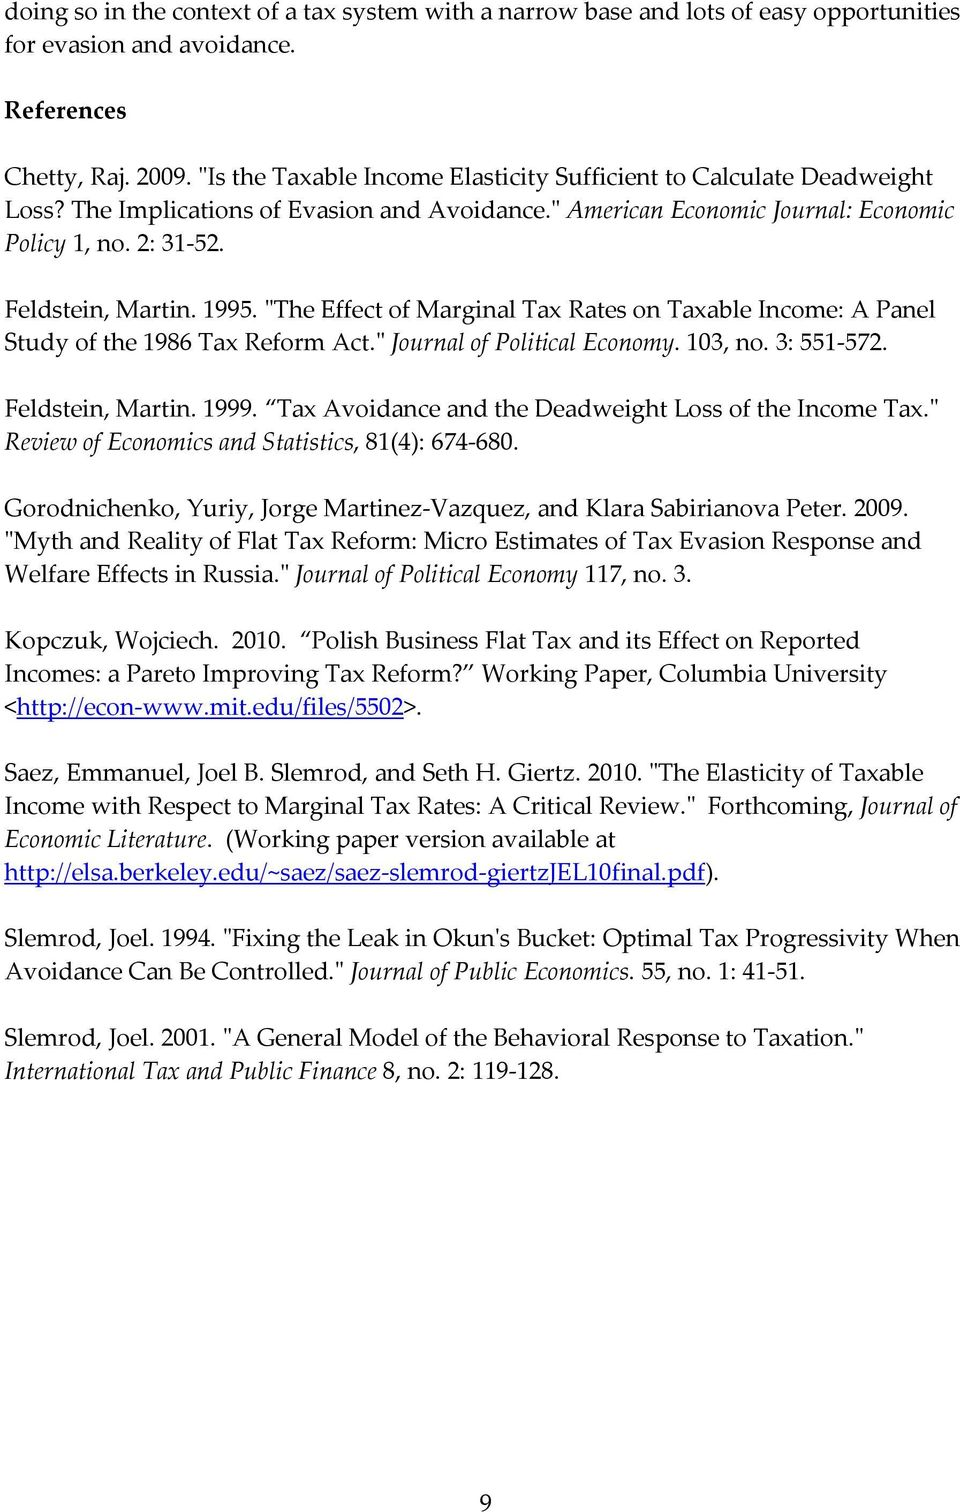 "1995. ""The Effect of Marginal Tax Rates on Taxable Income: A Panel Study of the 1986 Tax Reform Act."" Journal of Political Economy. 103, no. 3: 551-572. Feldstein, Martin. 1999."